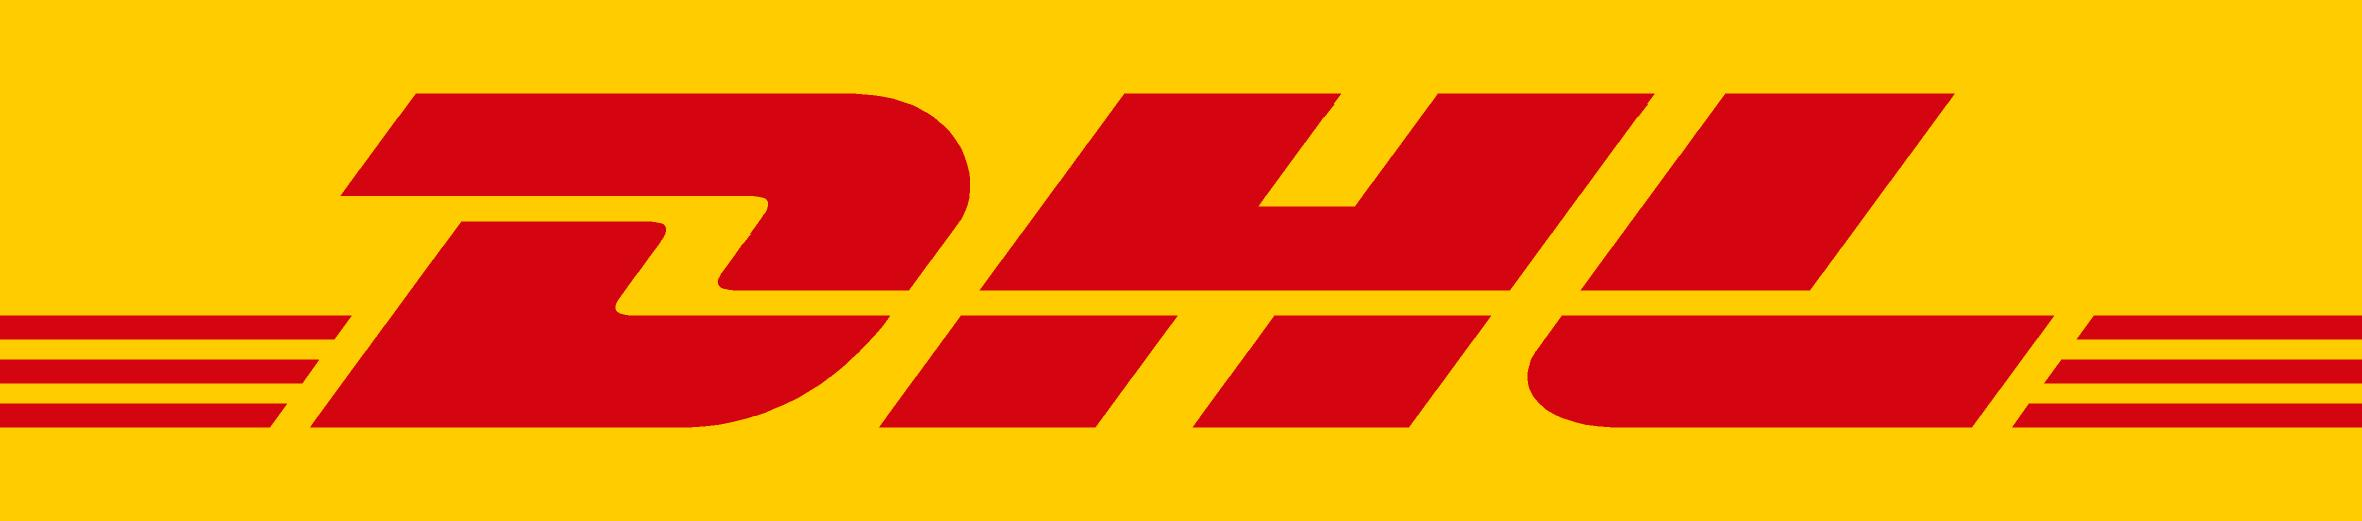 DHL takes innovative approach to grow retail footprint in sub-Saharan Africa by 1000%